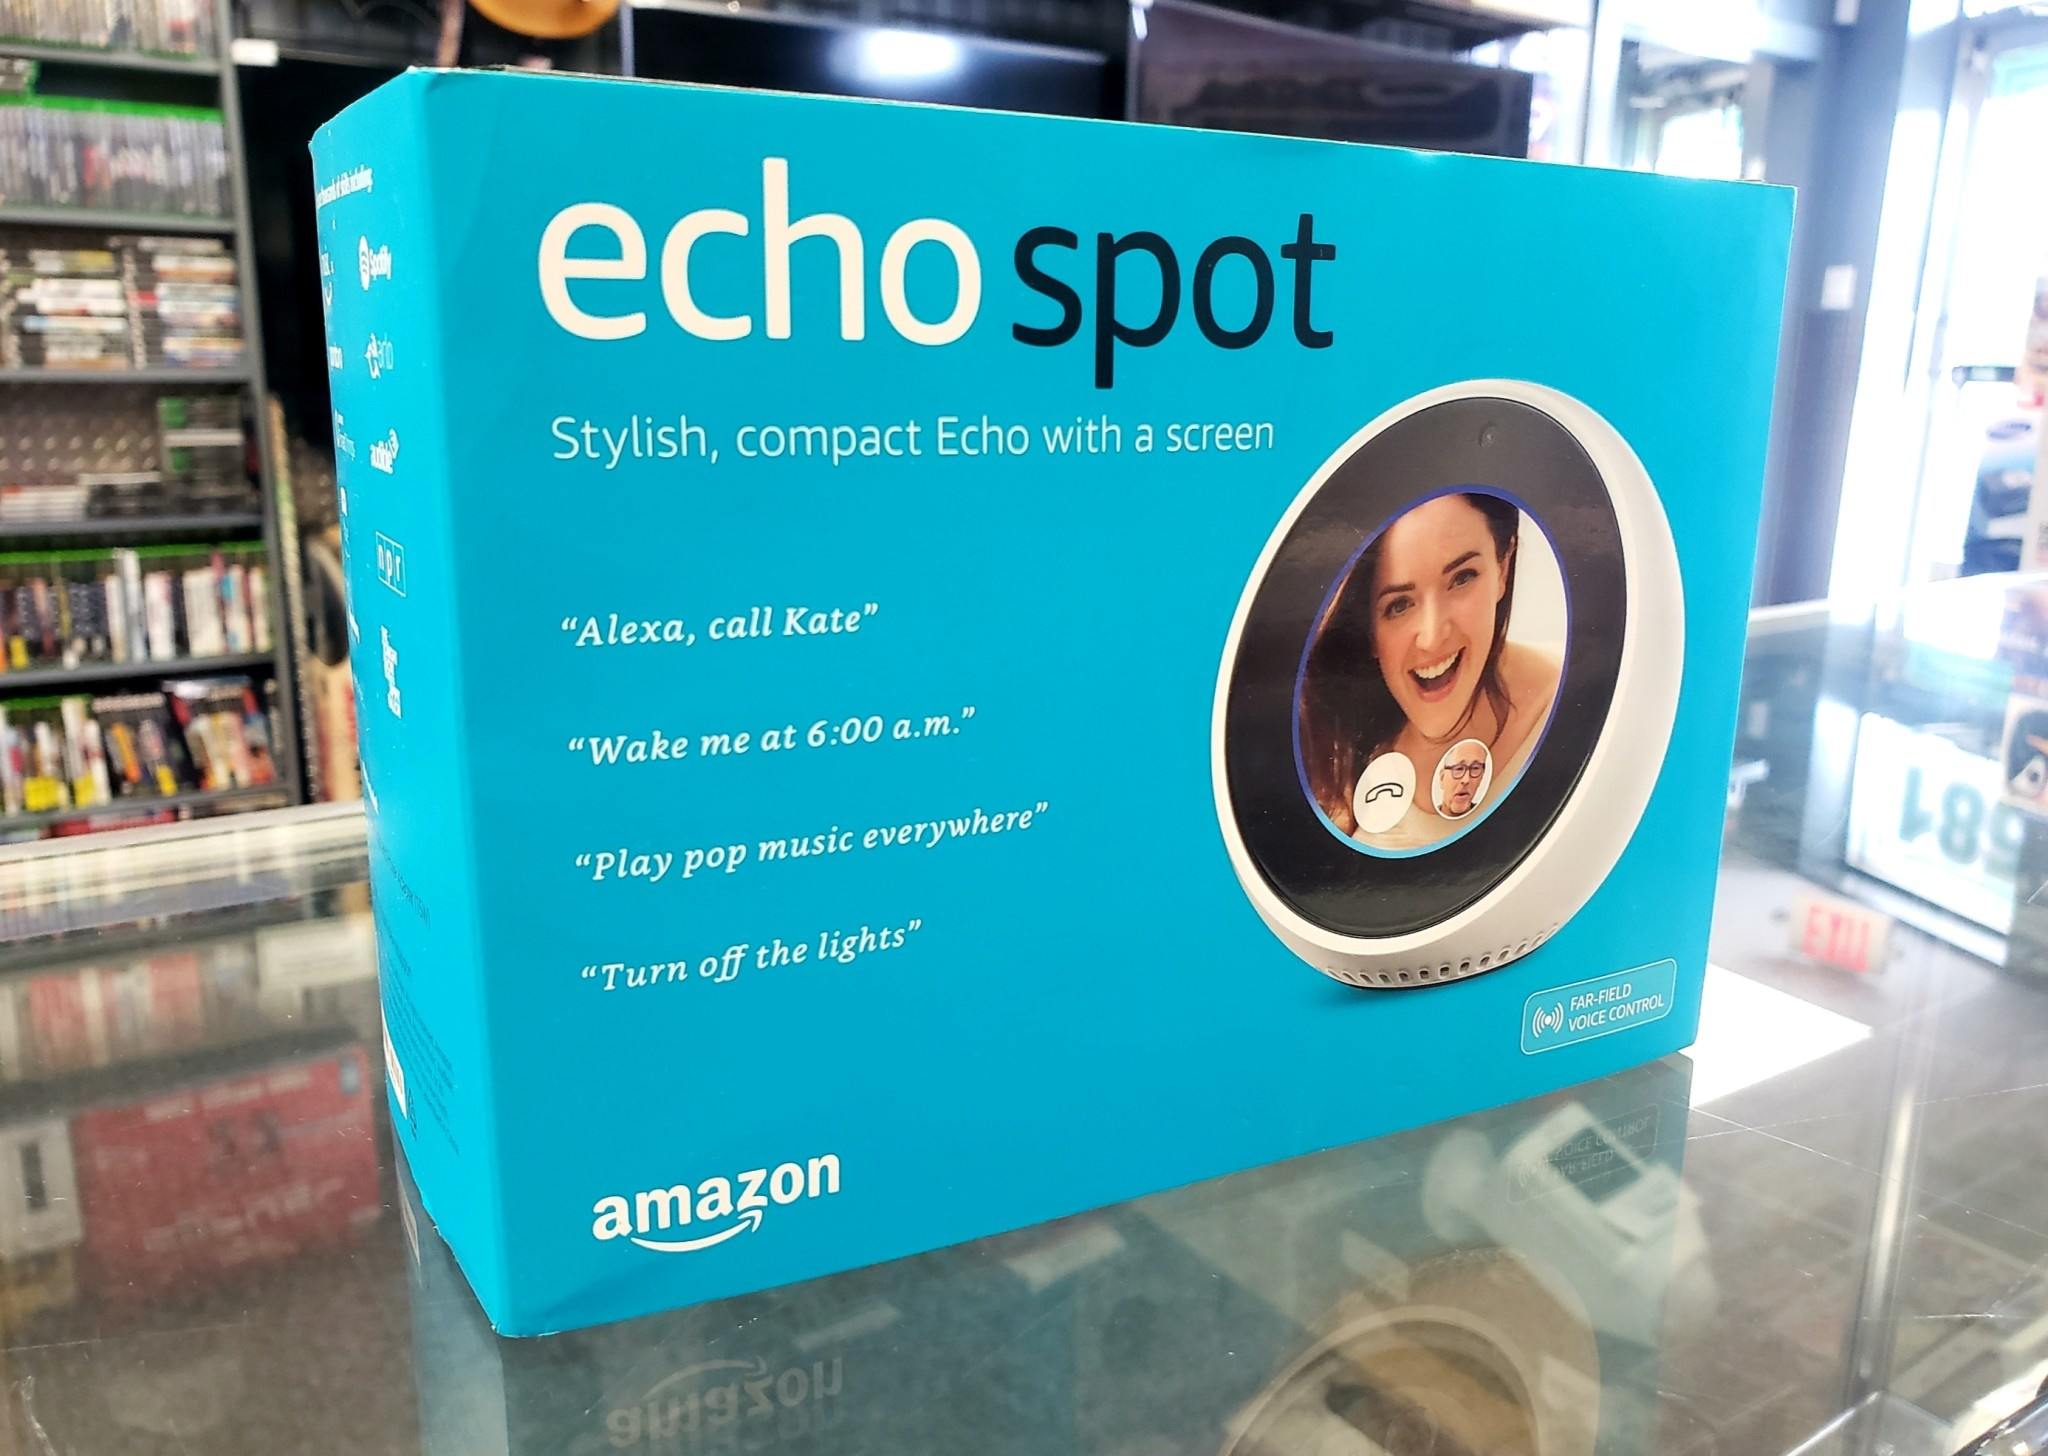 New in Box - Amazon Echo Spot - White